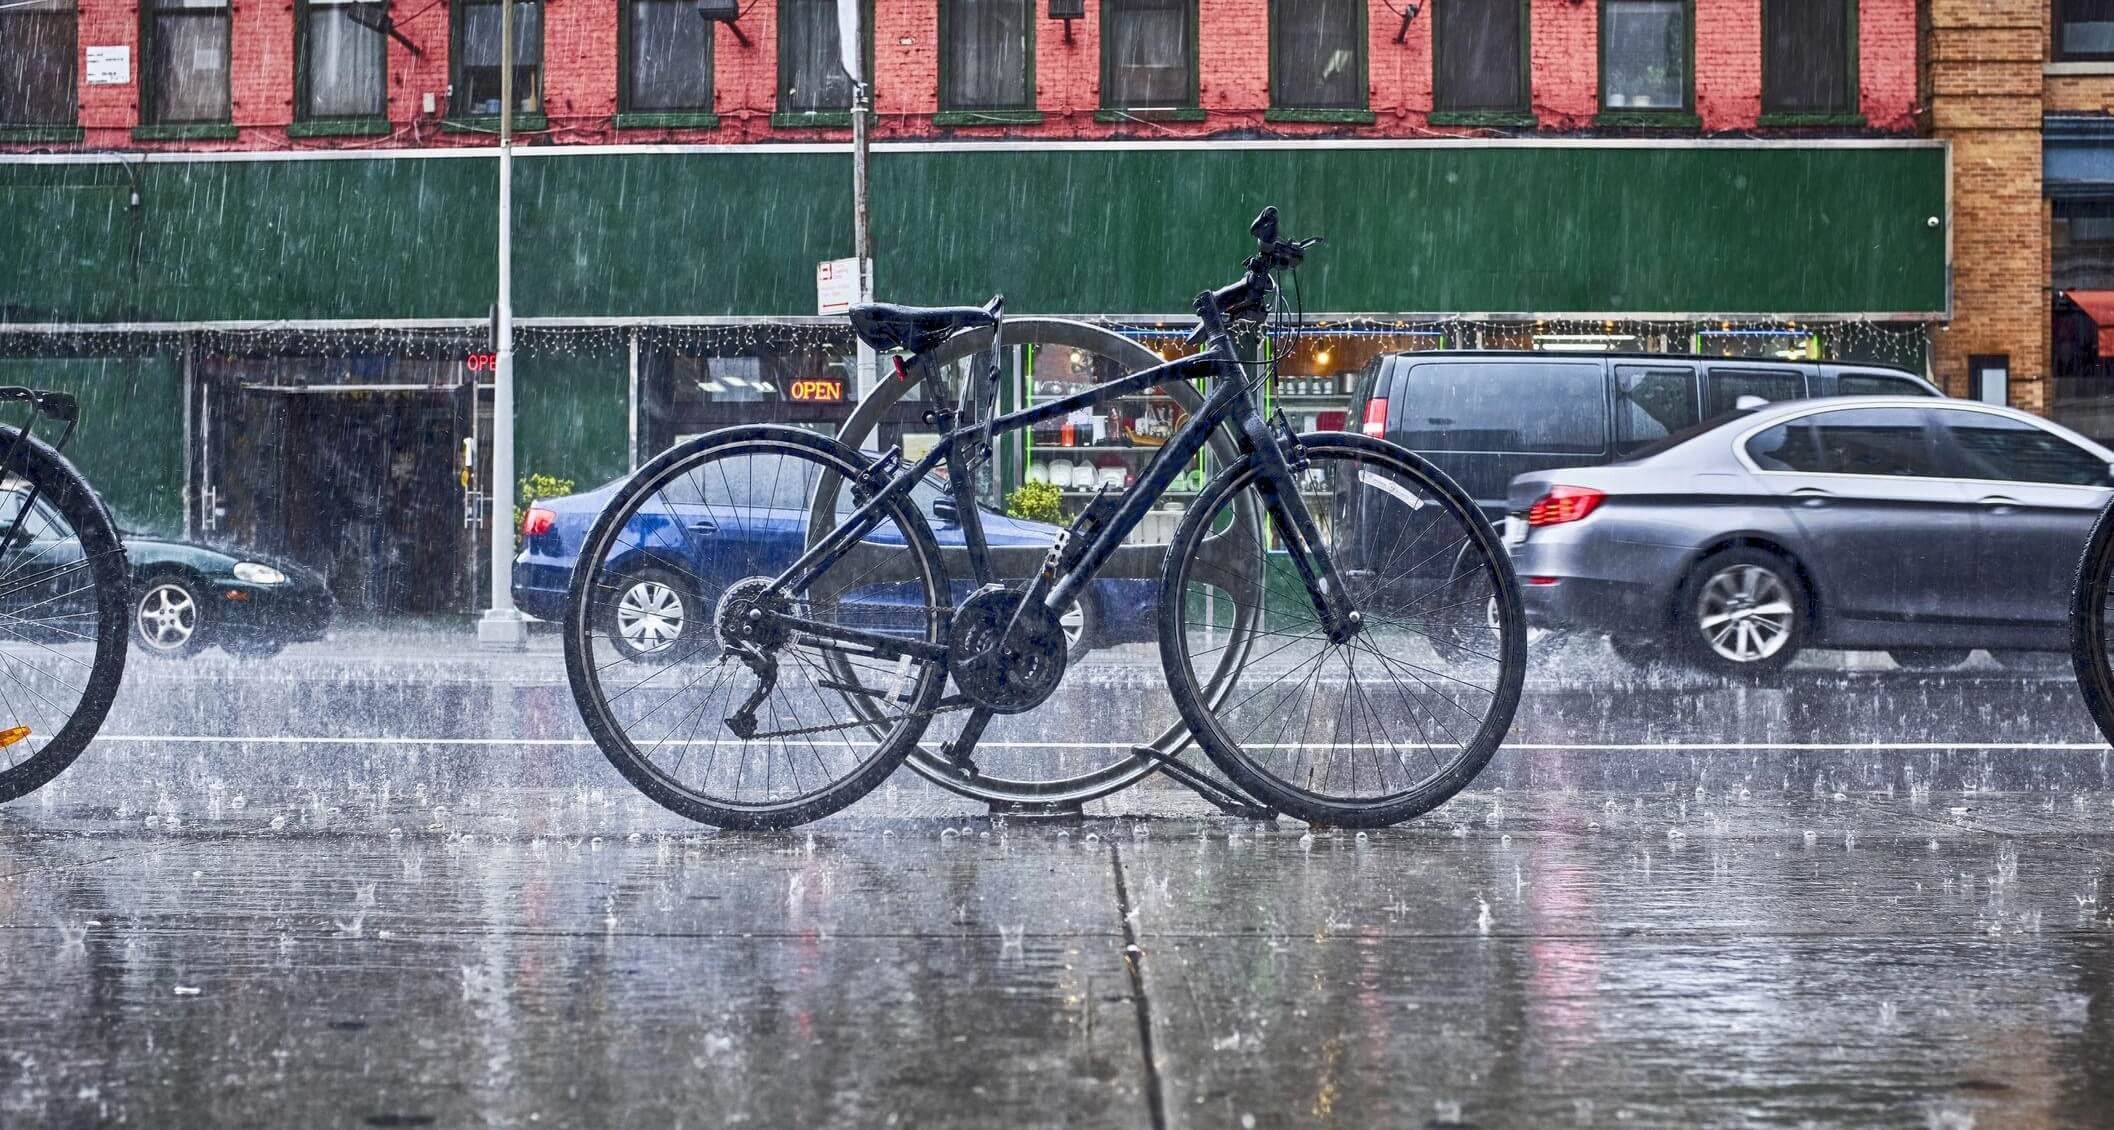 11 Crucial Tips for Wet Season Riding